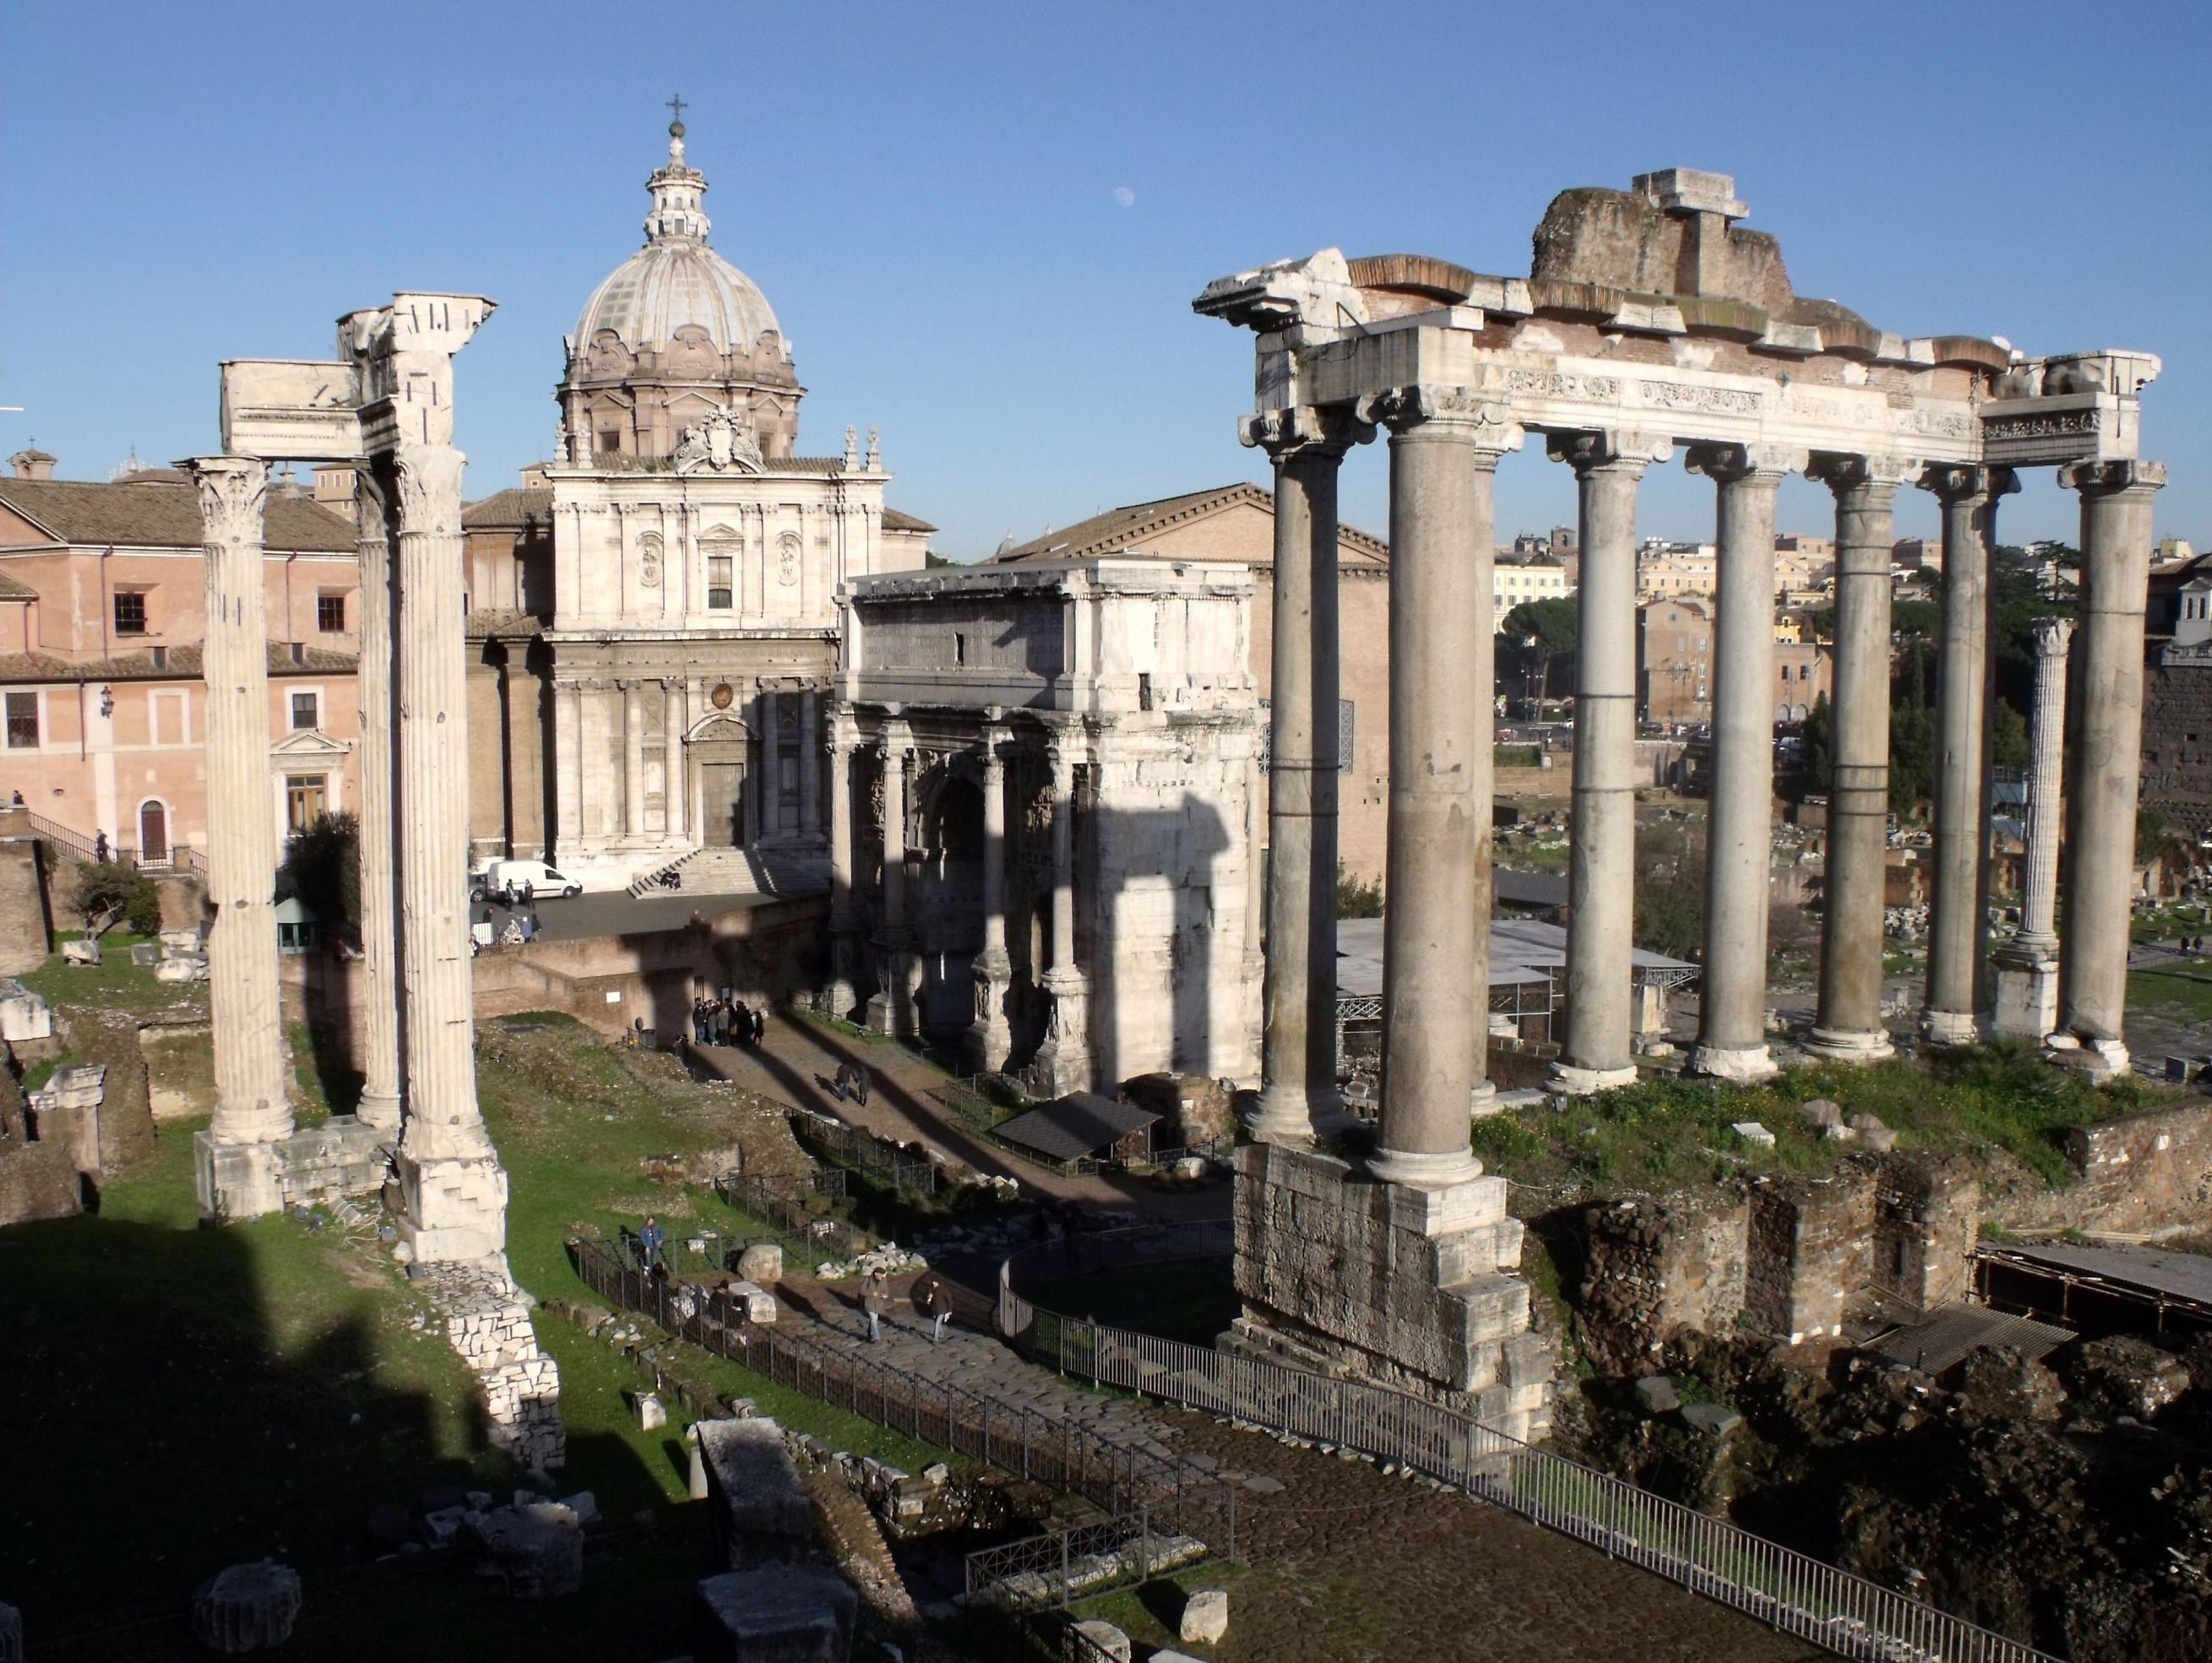 ancient rome pivotal civilization in world Start studying world history: ancient greece and rome learn vocabulary, terms, and more with flashcards, games, and other study tools.